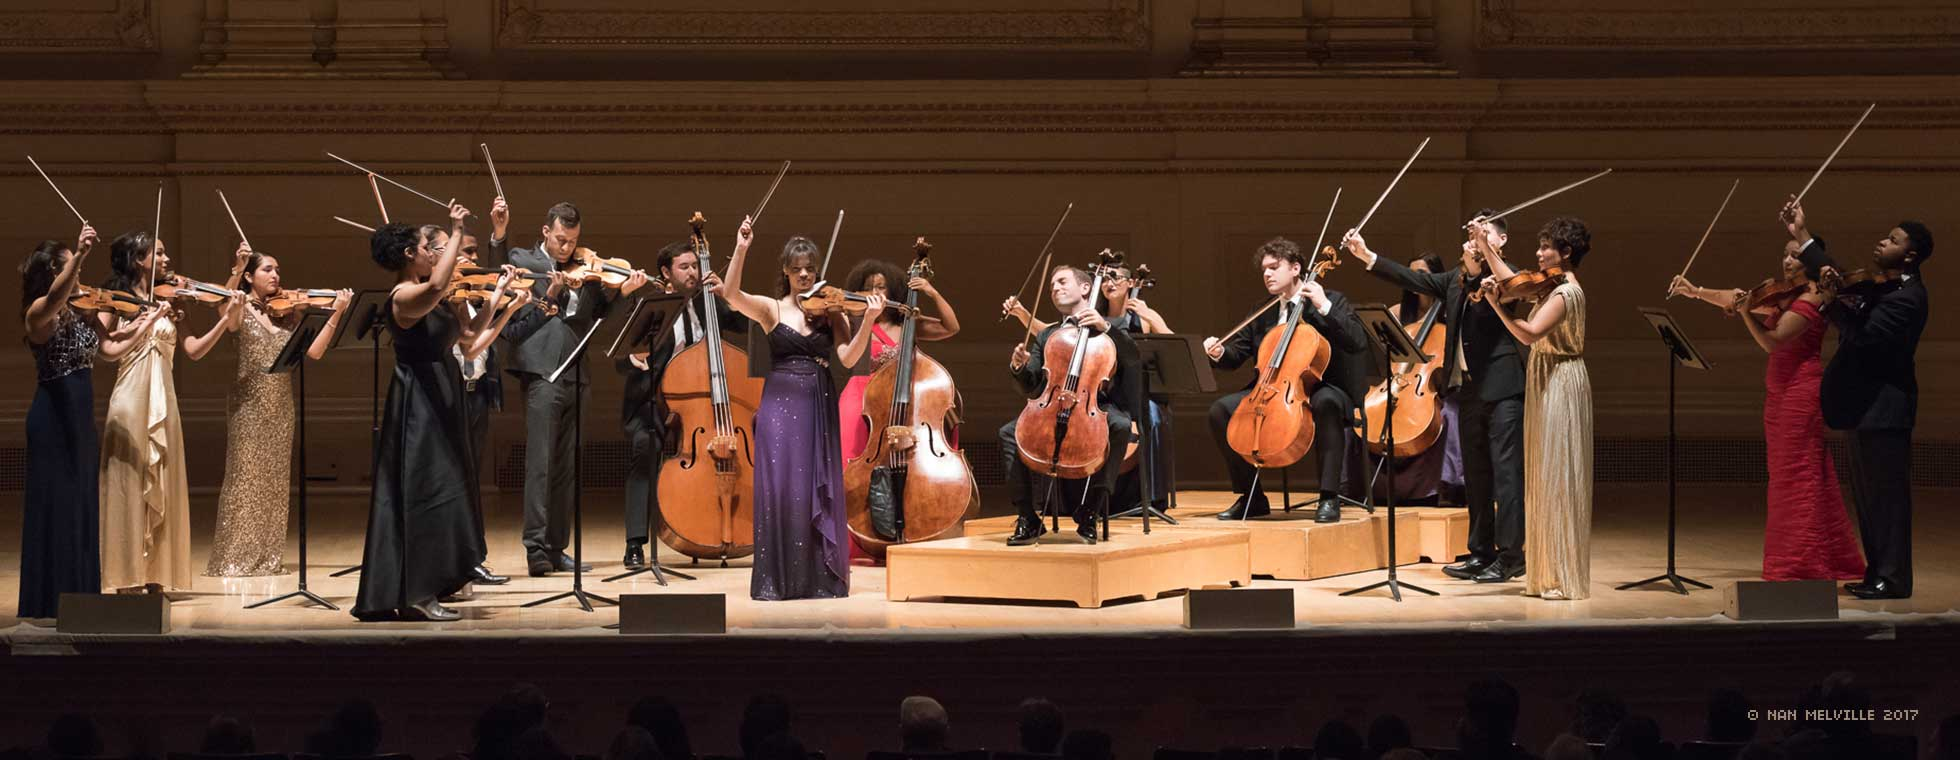 18 string musicians stand across the stage with their bows in the air.